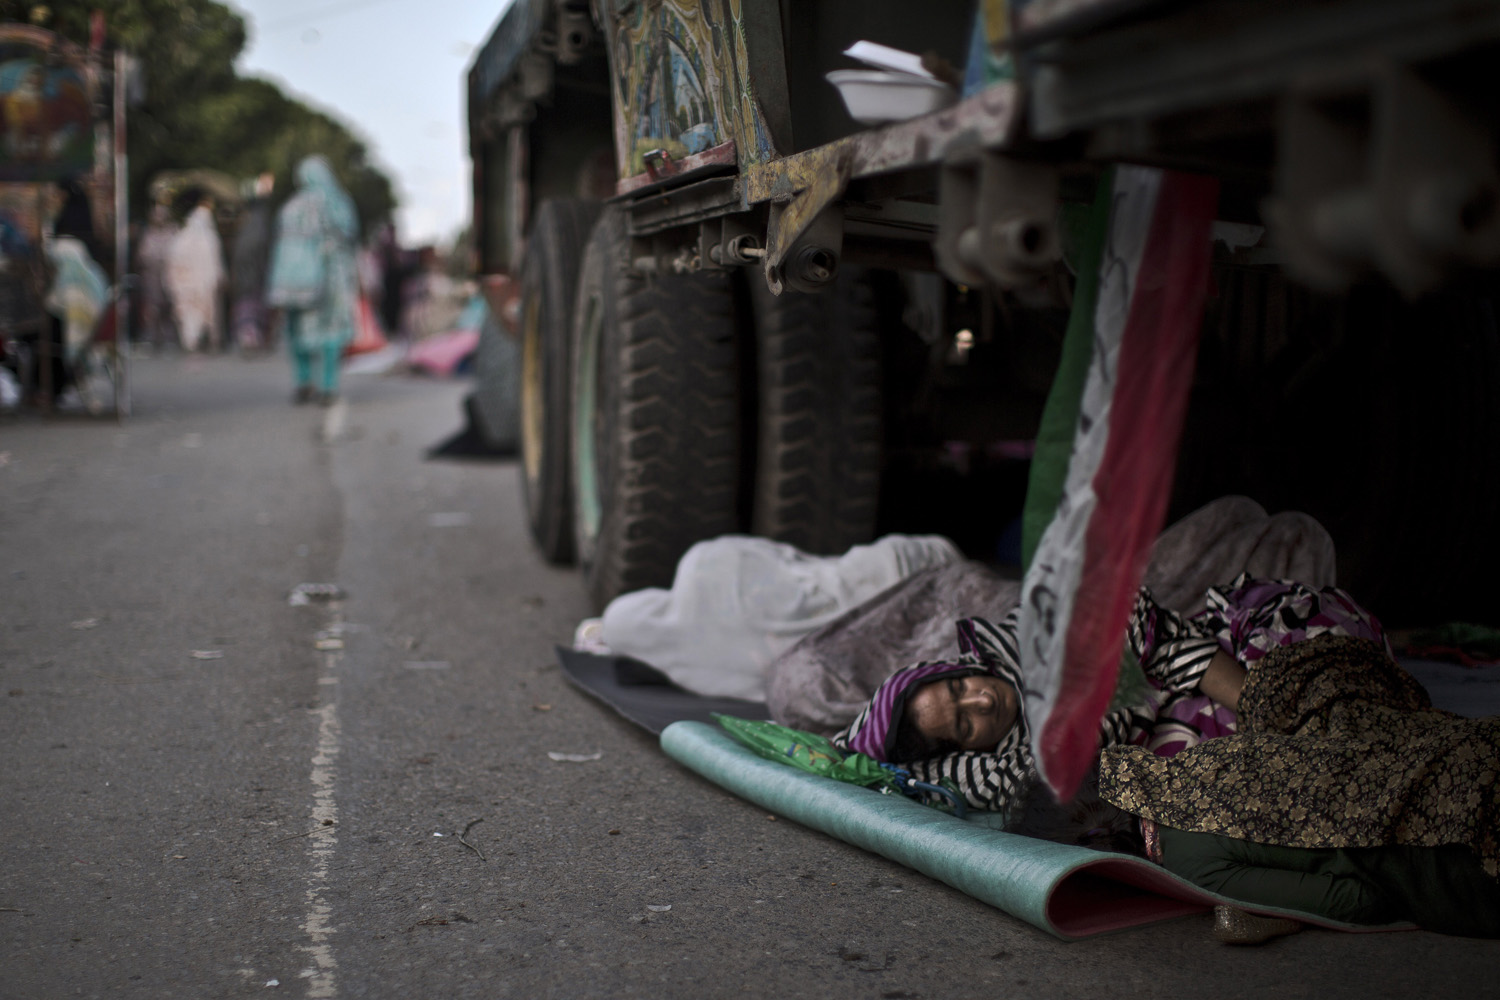 Aug. 17, 2014. A supporter of anti-government cleric Tahir-ul-Qadri, sleeps on the ground under a truck, during a protest, in Islamabad, Pakistan, Sunday, Qadri led massive rallies Saturday in Pakistanís capital, demanding Prime Minister Nawaz Sharif step down over alleged fraud in last yearís election in front of thousands of protesters.